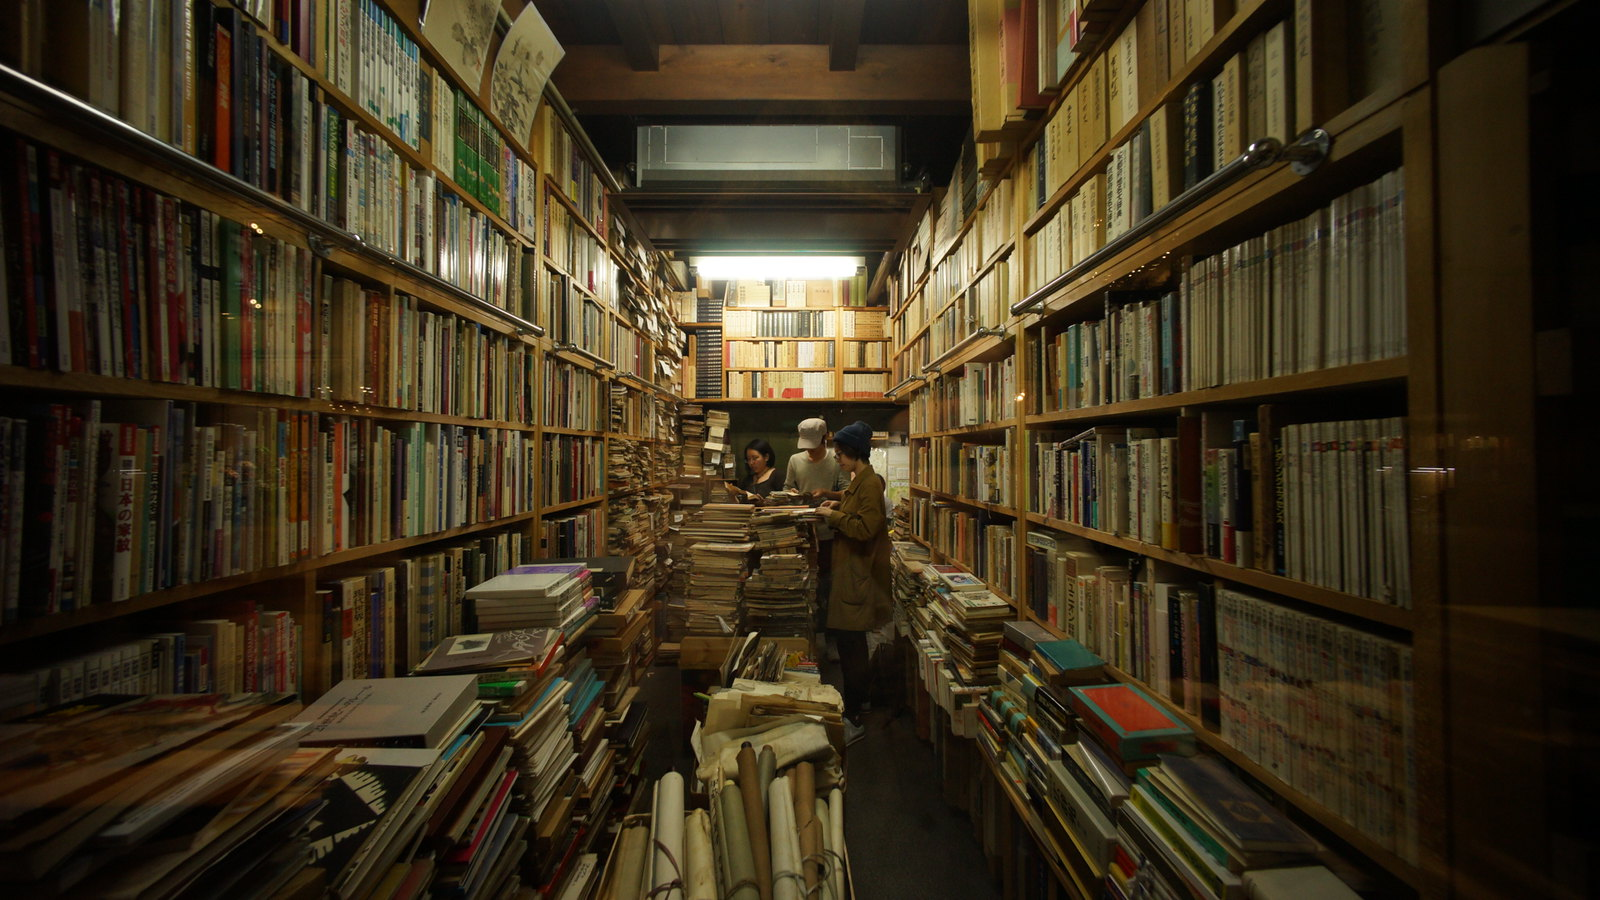 Bookshop in Kyoto